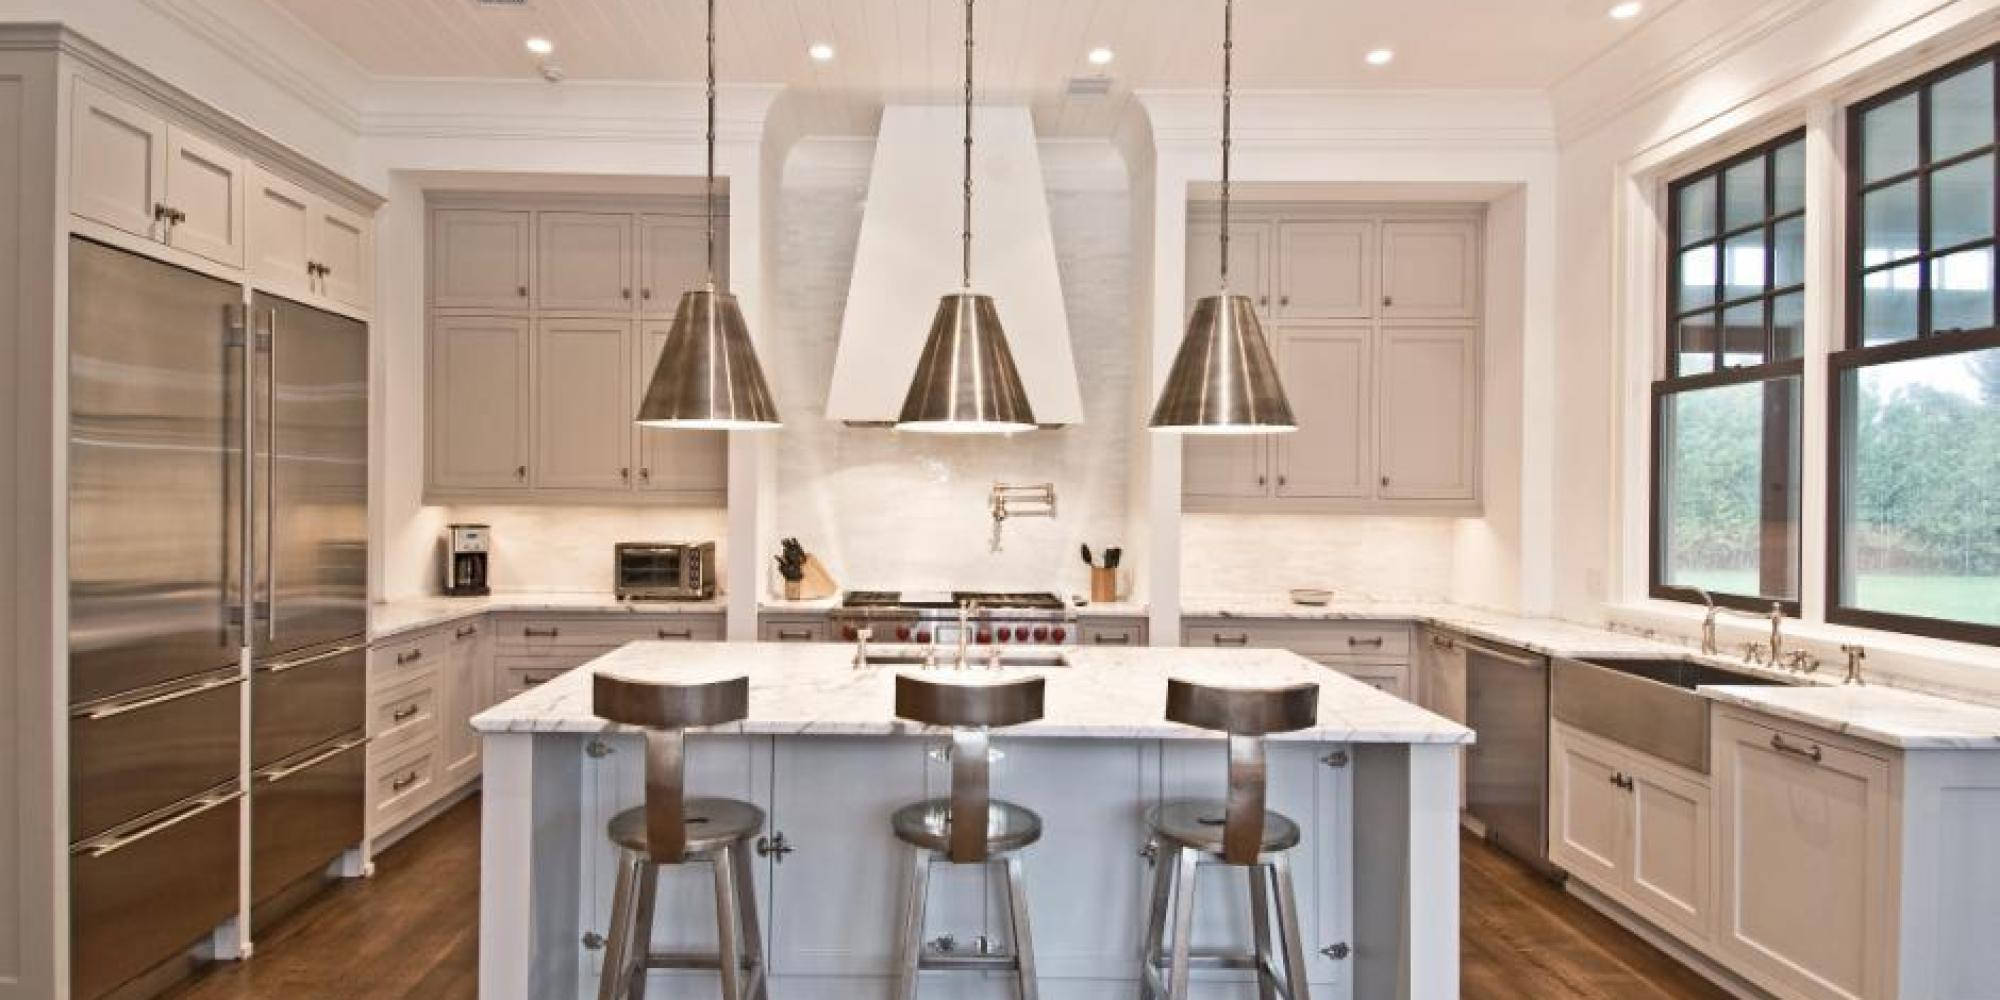 Colour For Kitchens The Best Paint Colors For Every Type Of Kitchen Huffpost